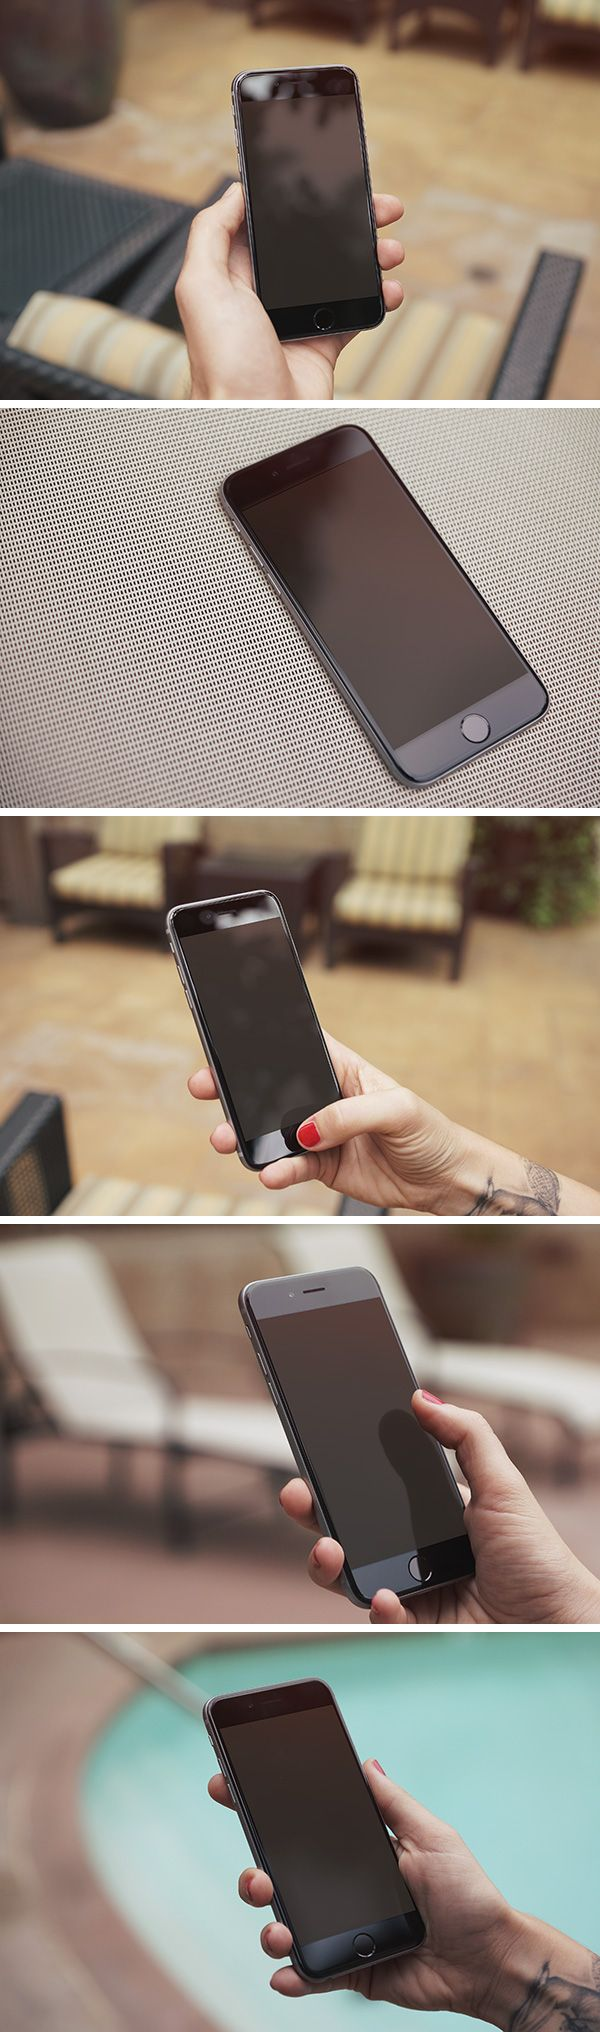 5 iPhone 6 Photo MockUps | GraphicBurger